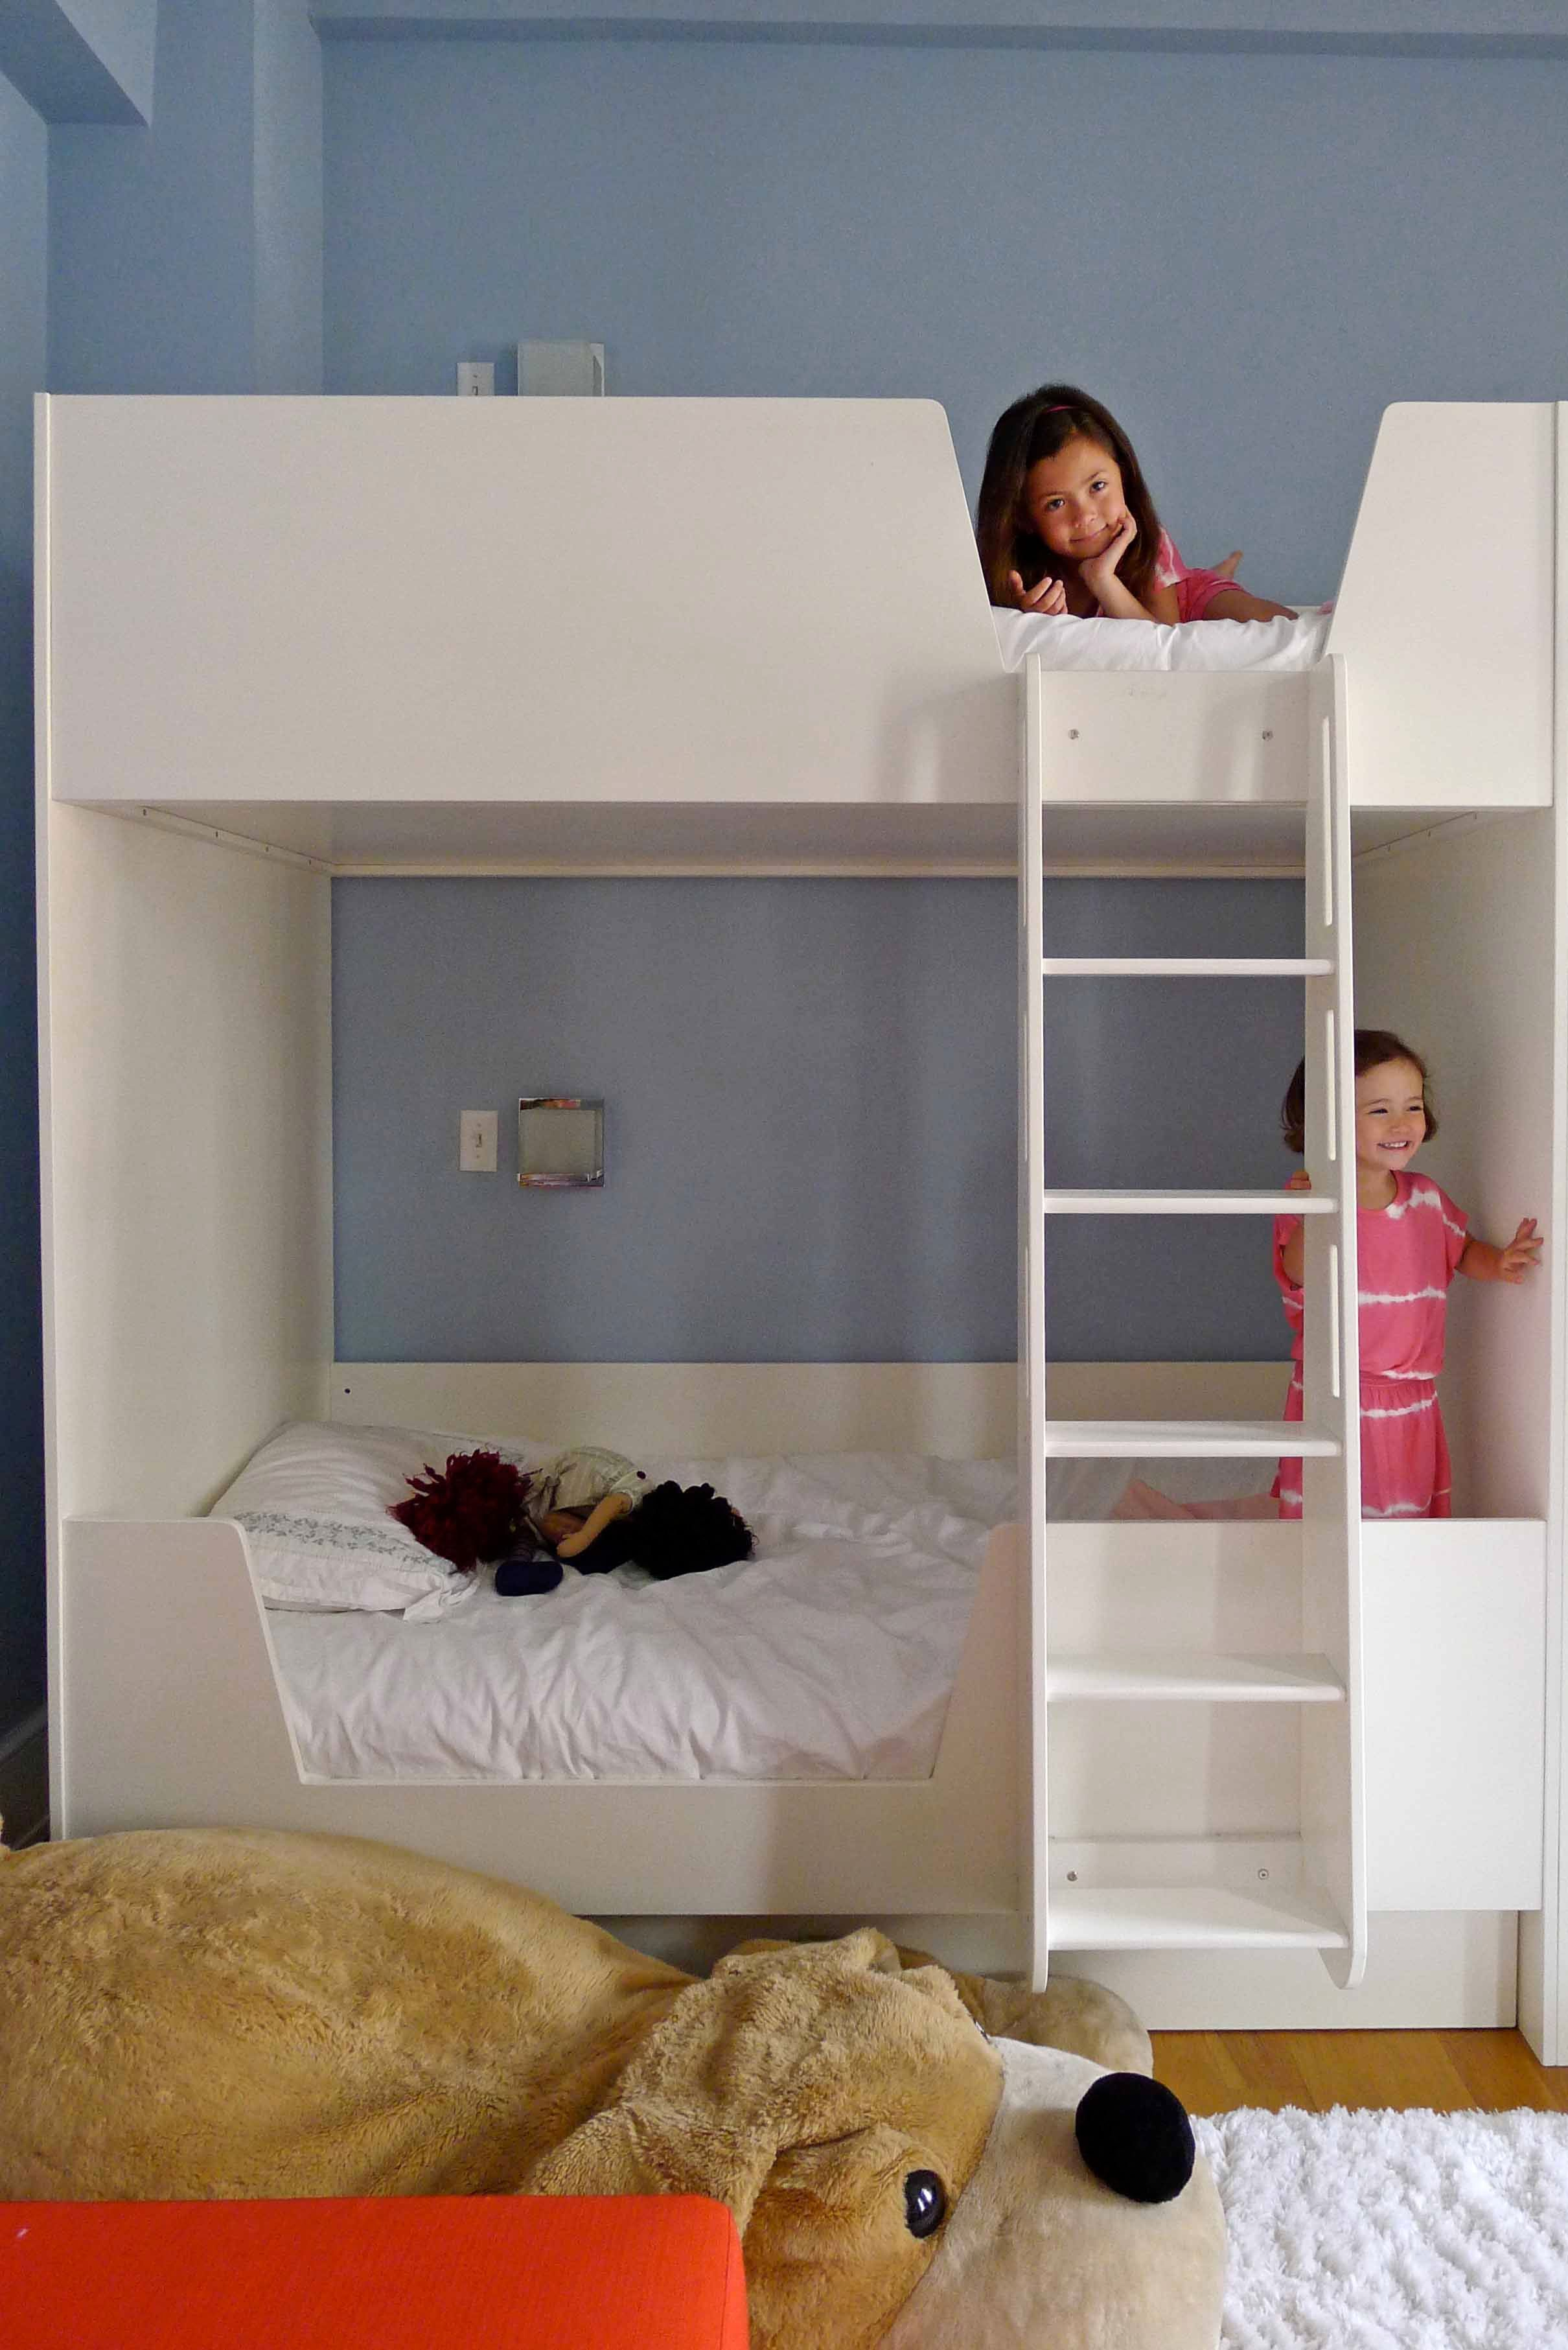 Double Deck Bed Design Make The Most Of Your Bedroom Home New Homes Bunk Beds Built In